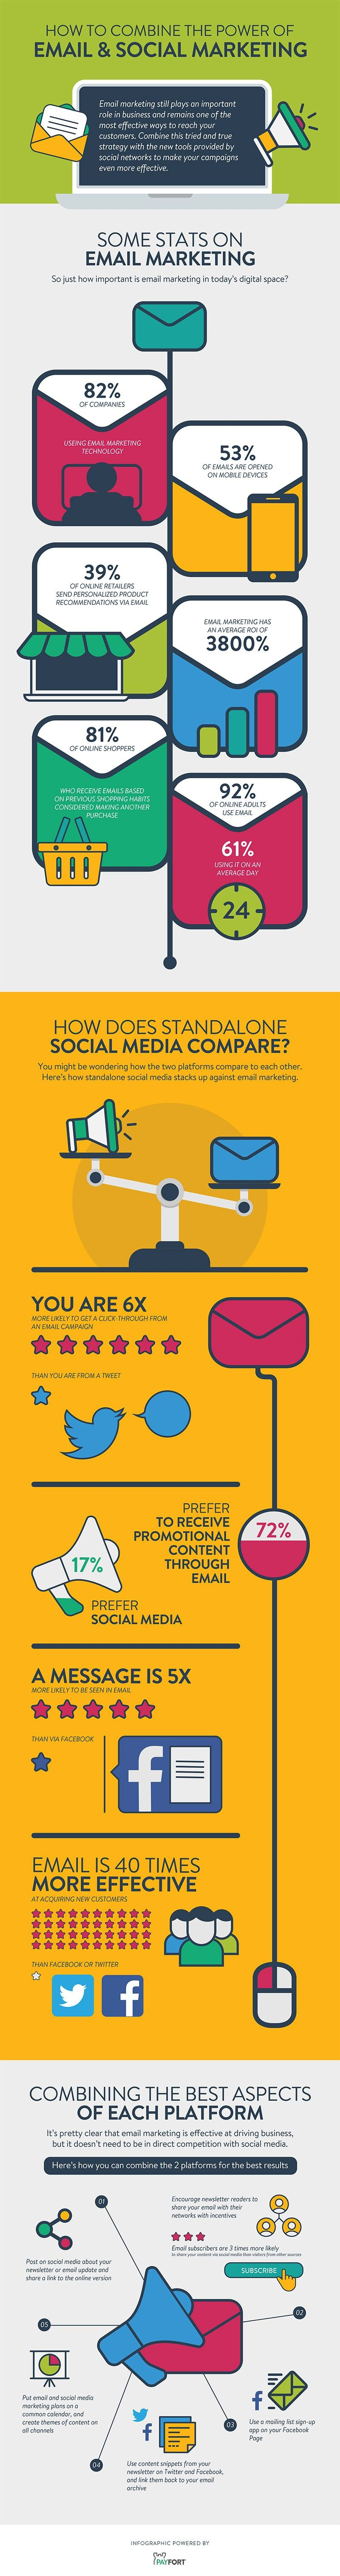 social-media-and-email-marketing-together-infographic-stats